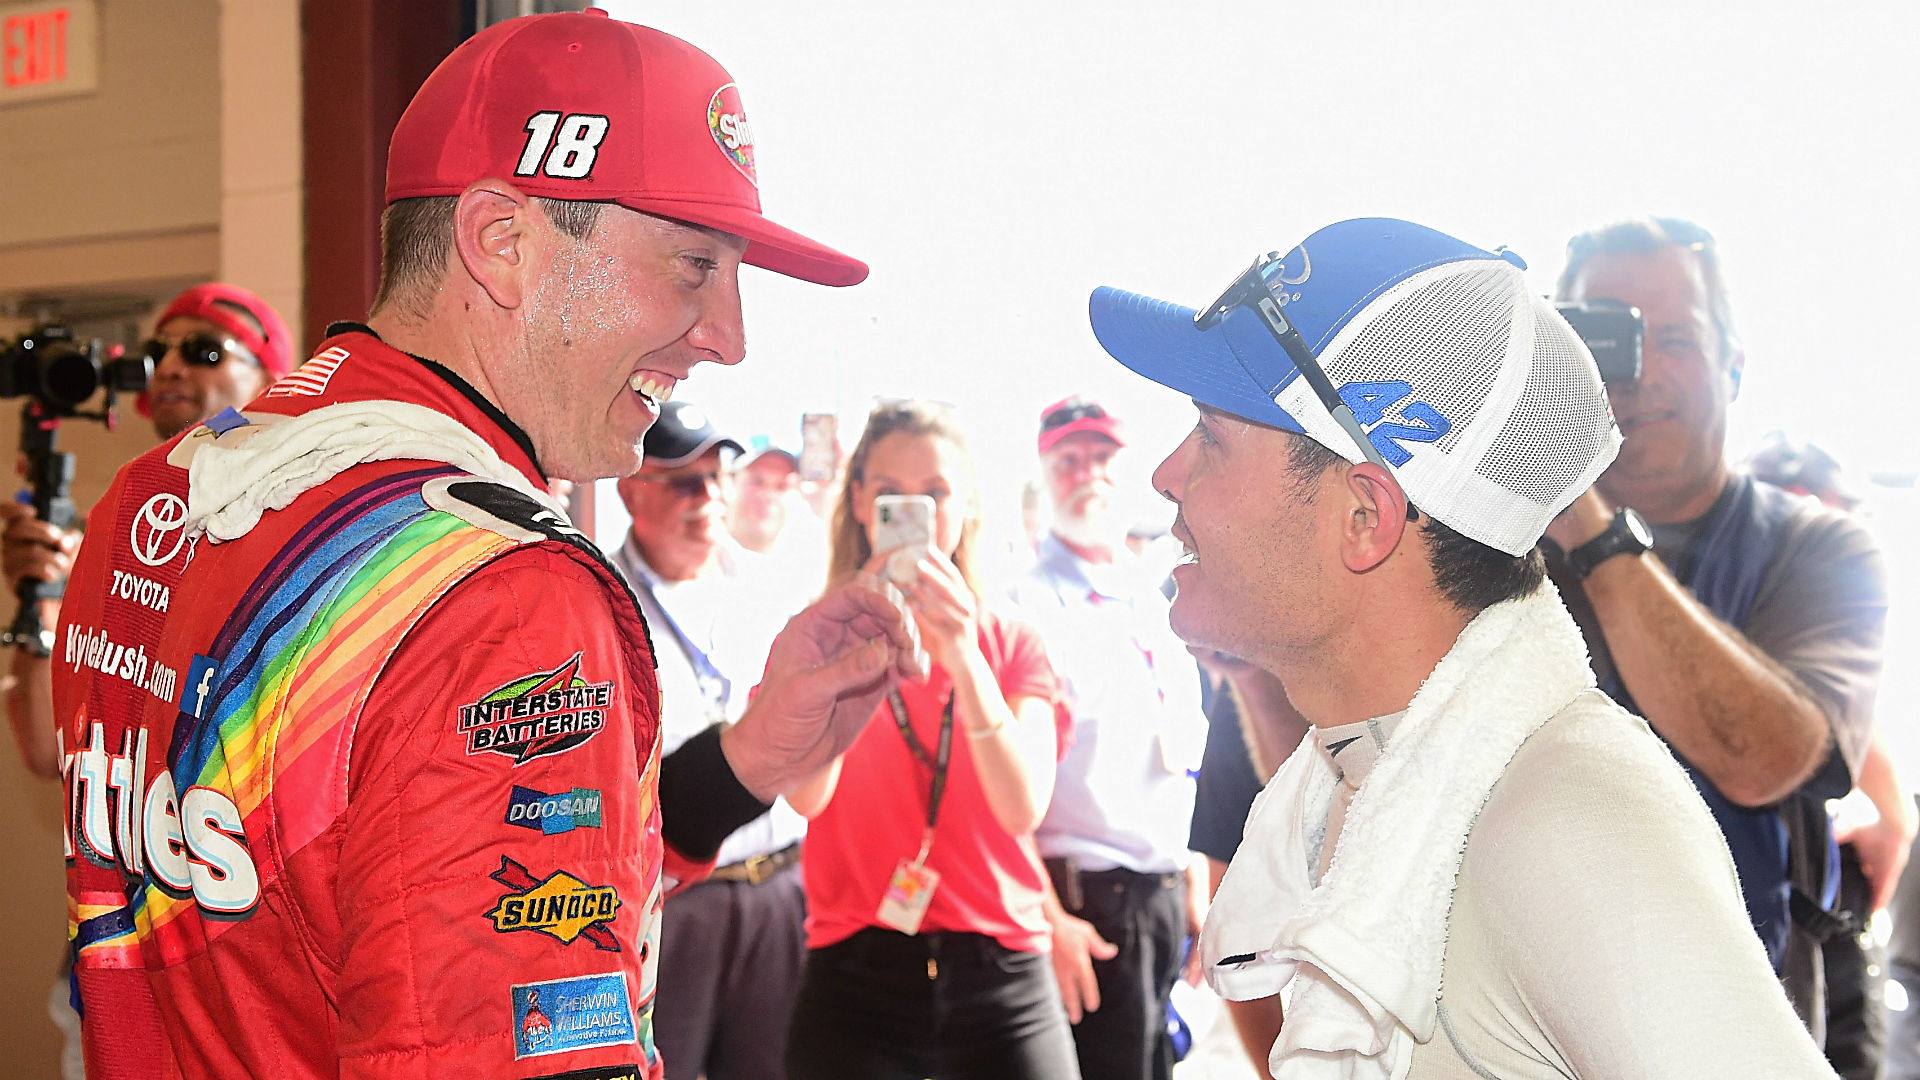 Jones victory a good sign for NASCAR